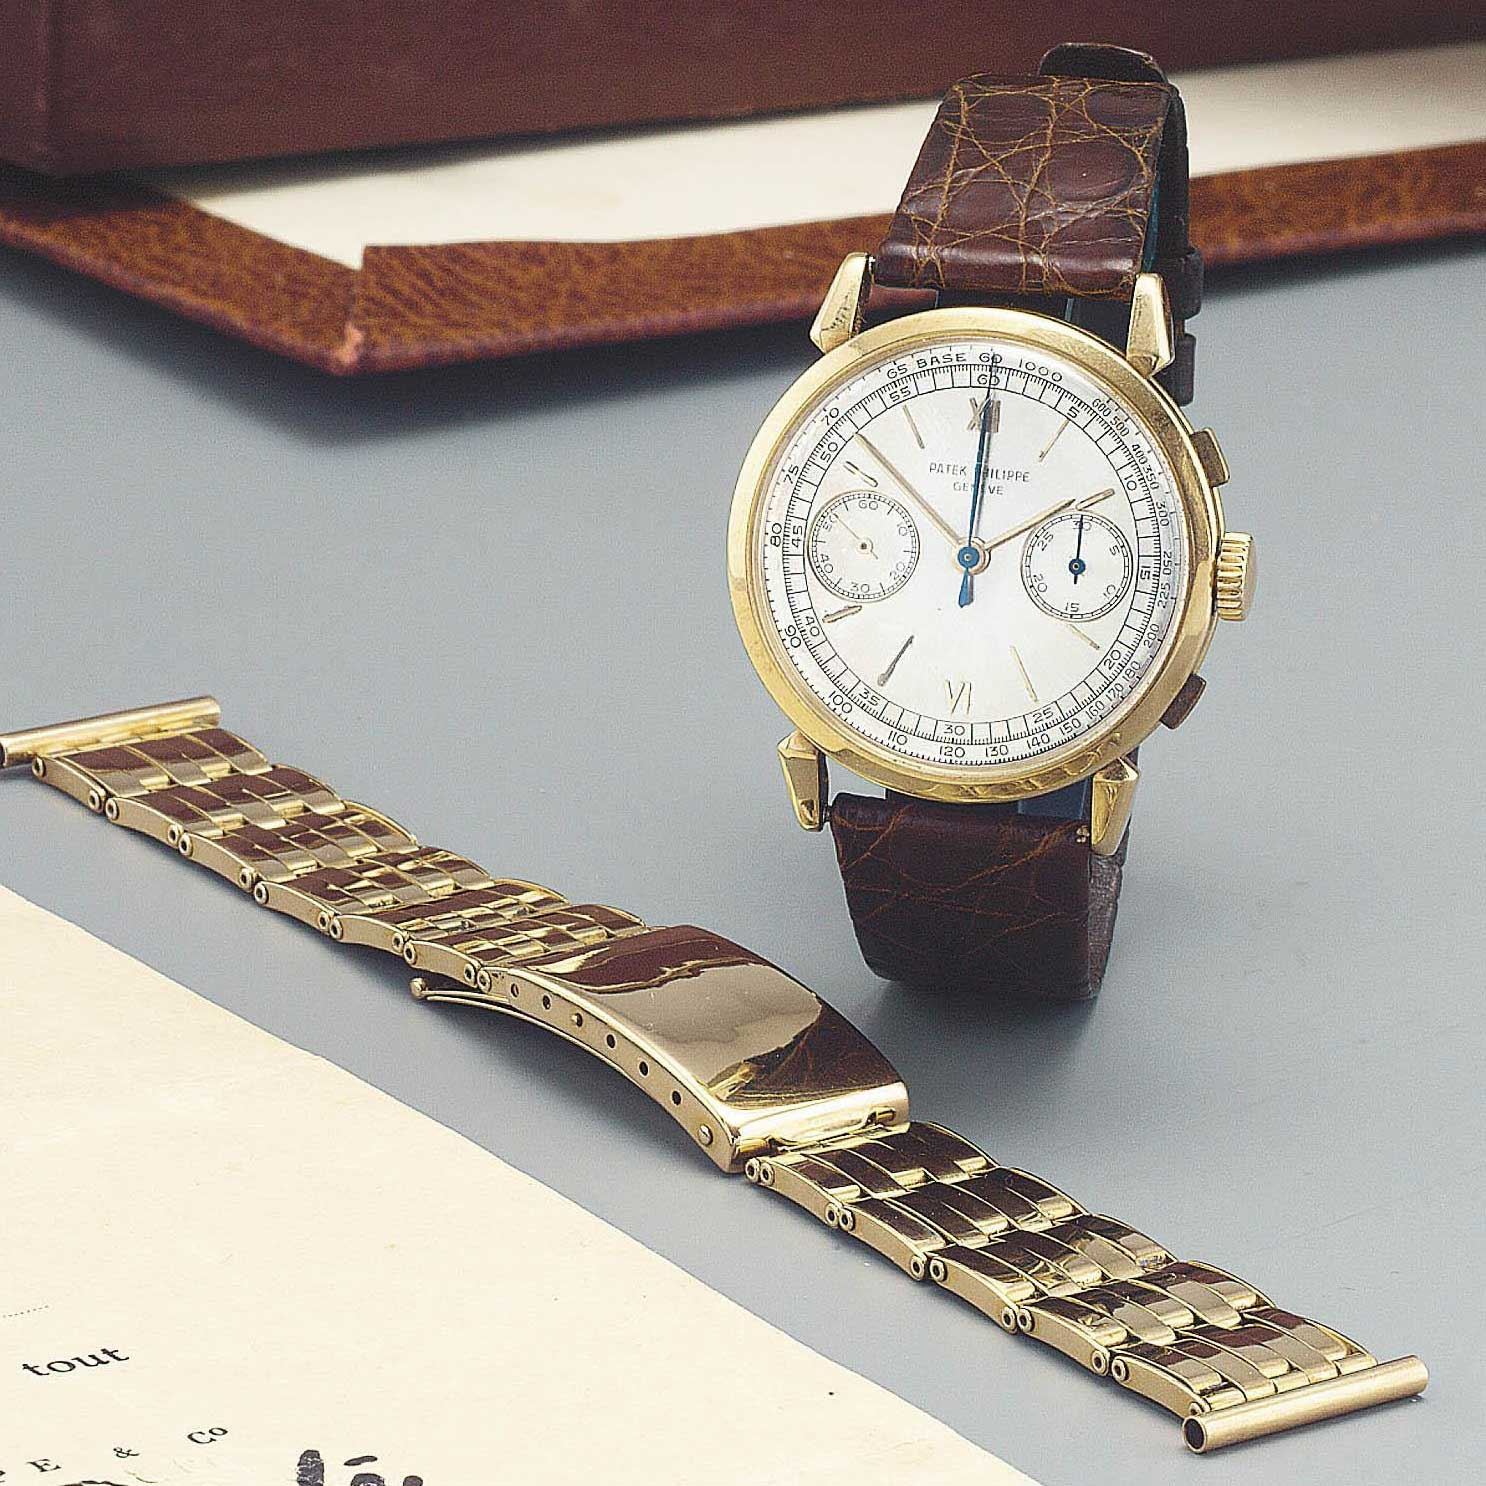 1949 Patek Philippe ref. 1579 gold chronograph with silvered dial, applied gold roman and baton numerals, supplised with with gold bracelet (Image: Sothebys.com)